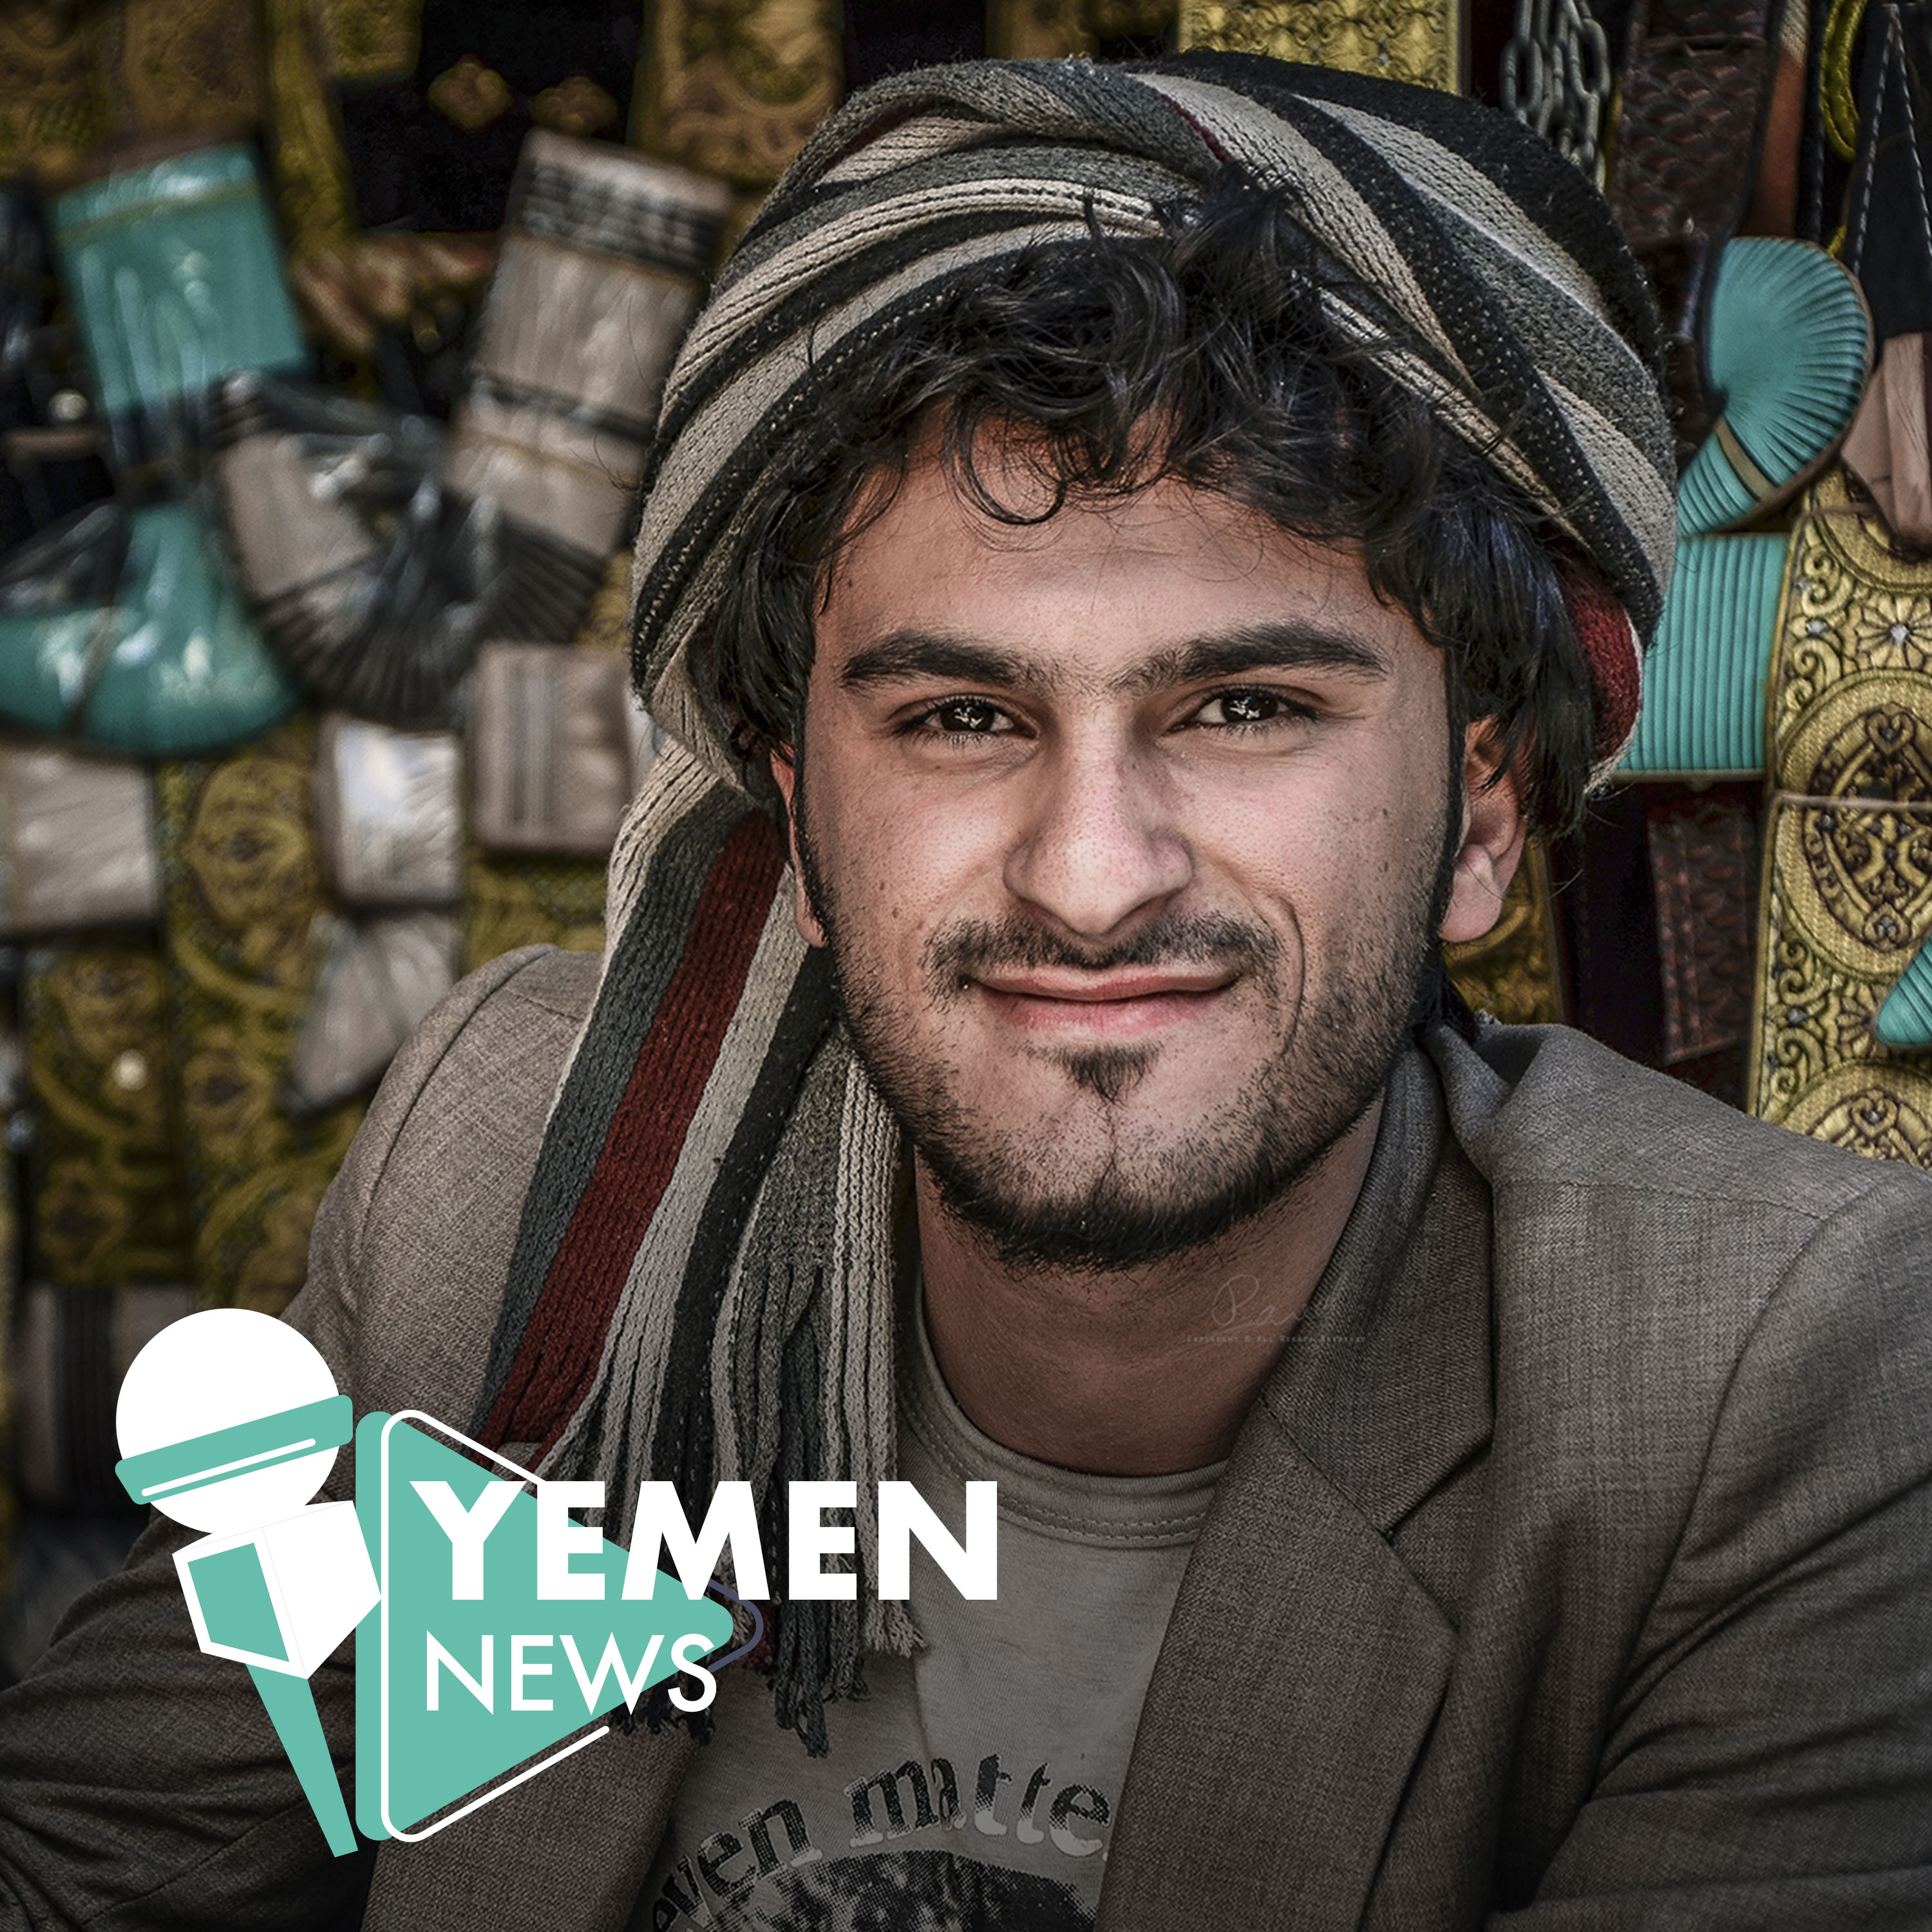 Show artwork for Yemen News